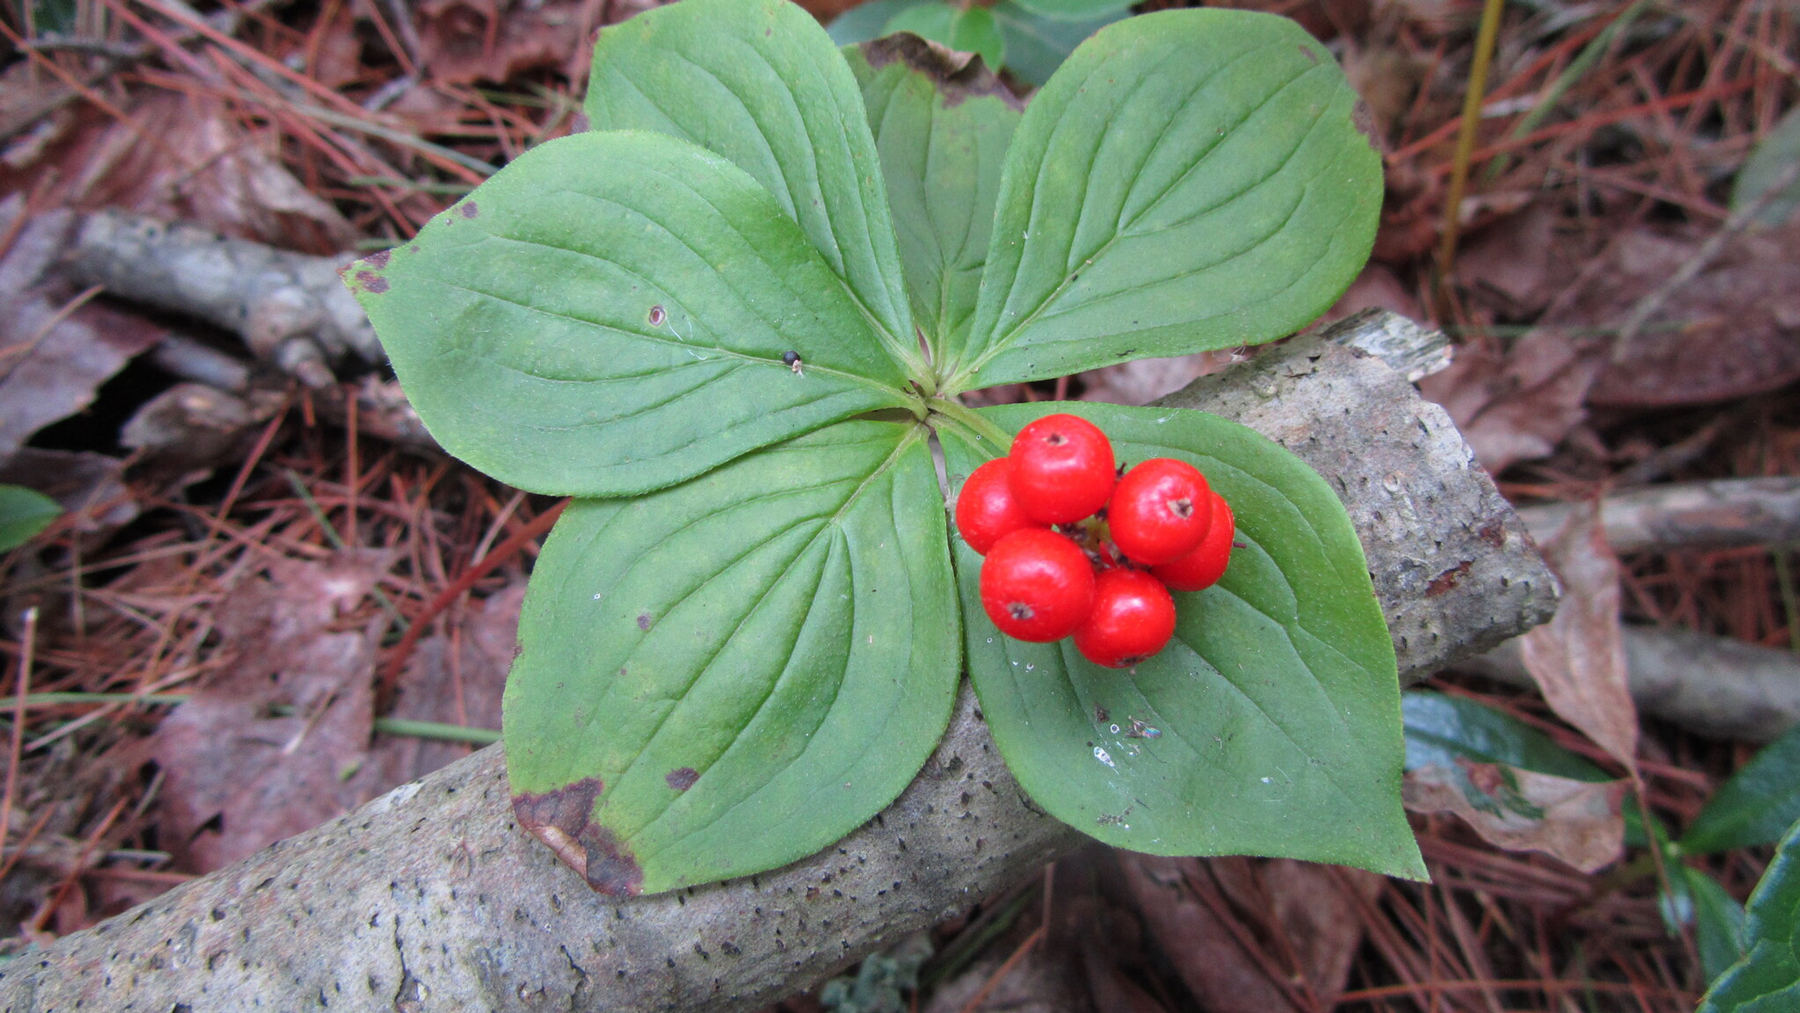 Bunchberry, a rare plant in Illinois. Photo credit: Paul Marcum, INHS